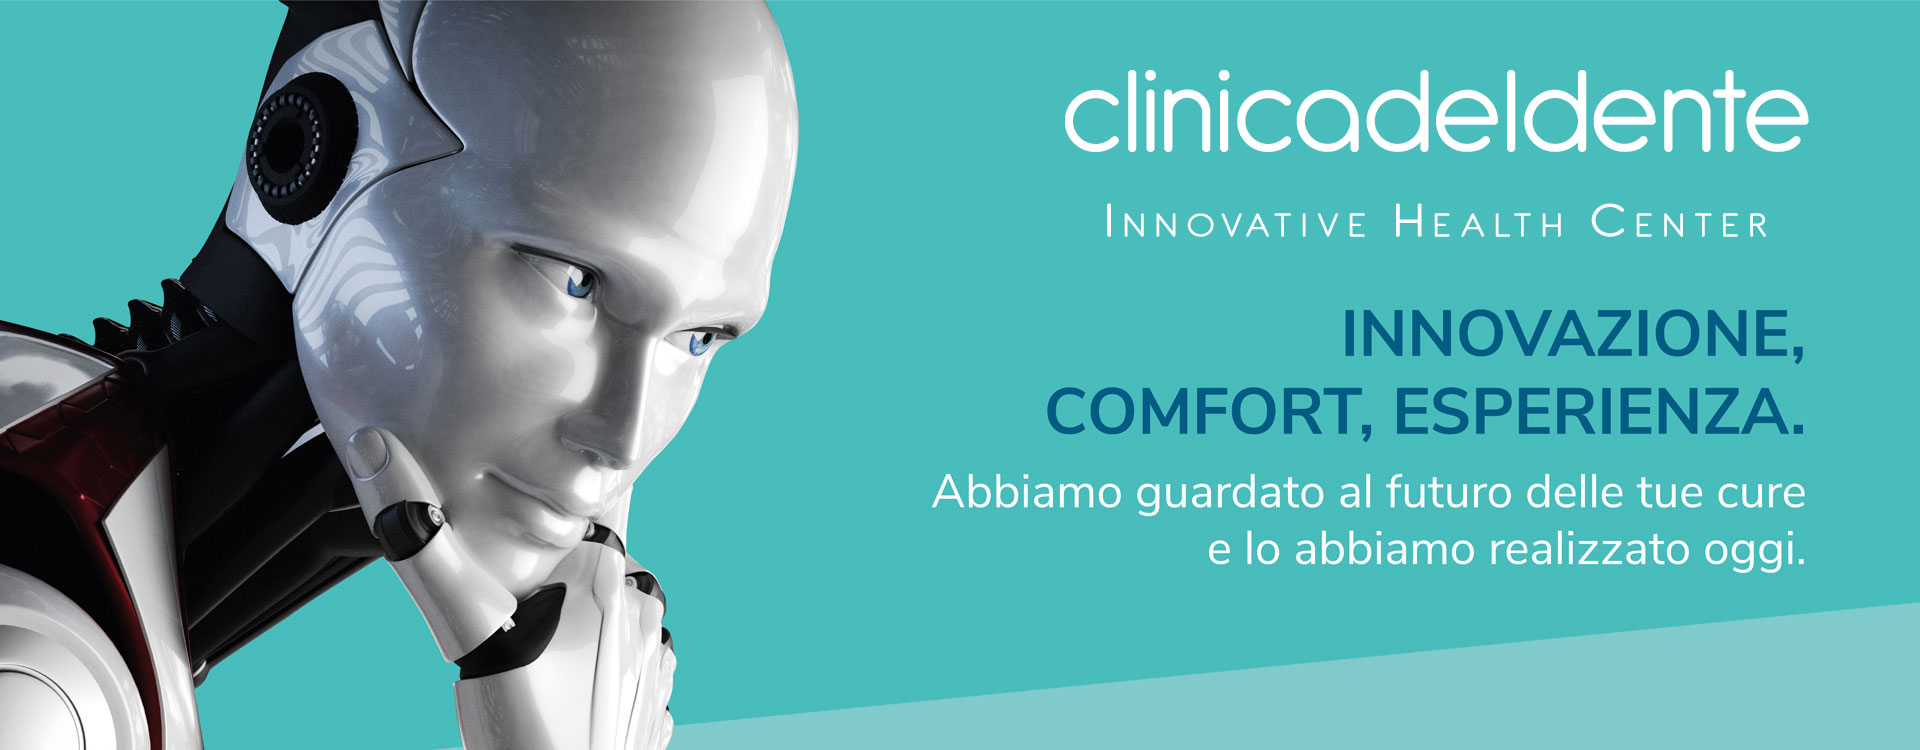 clinica_del_dente_slider_1